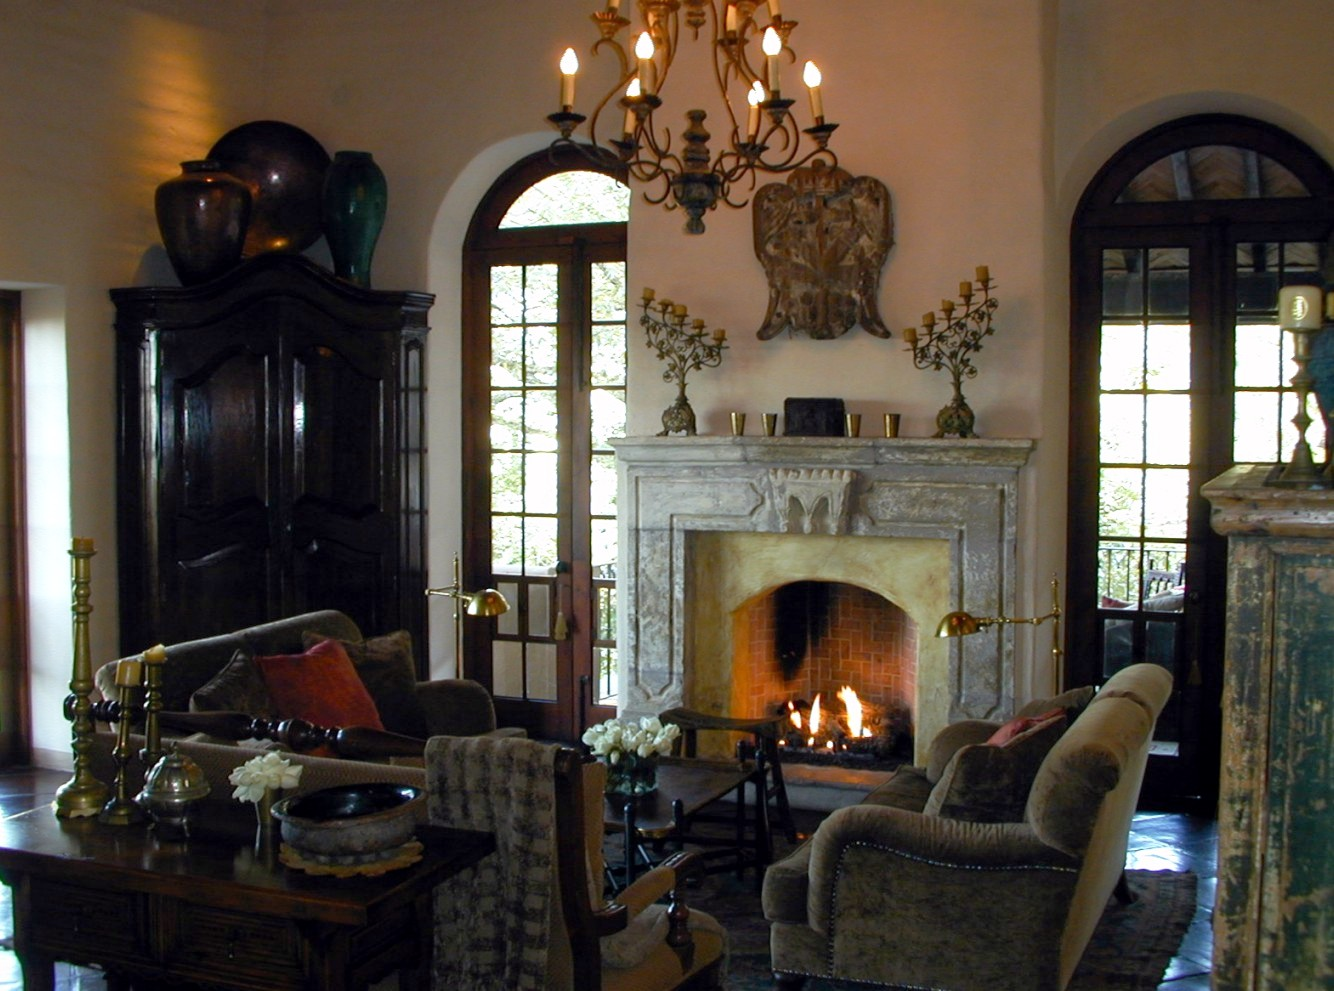 villaelcerrito_15 living room with fireplace